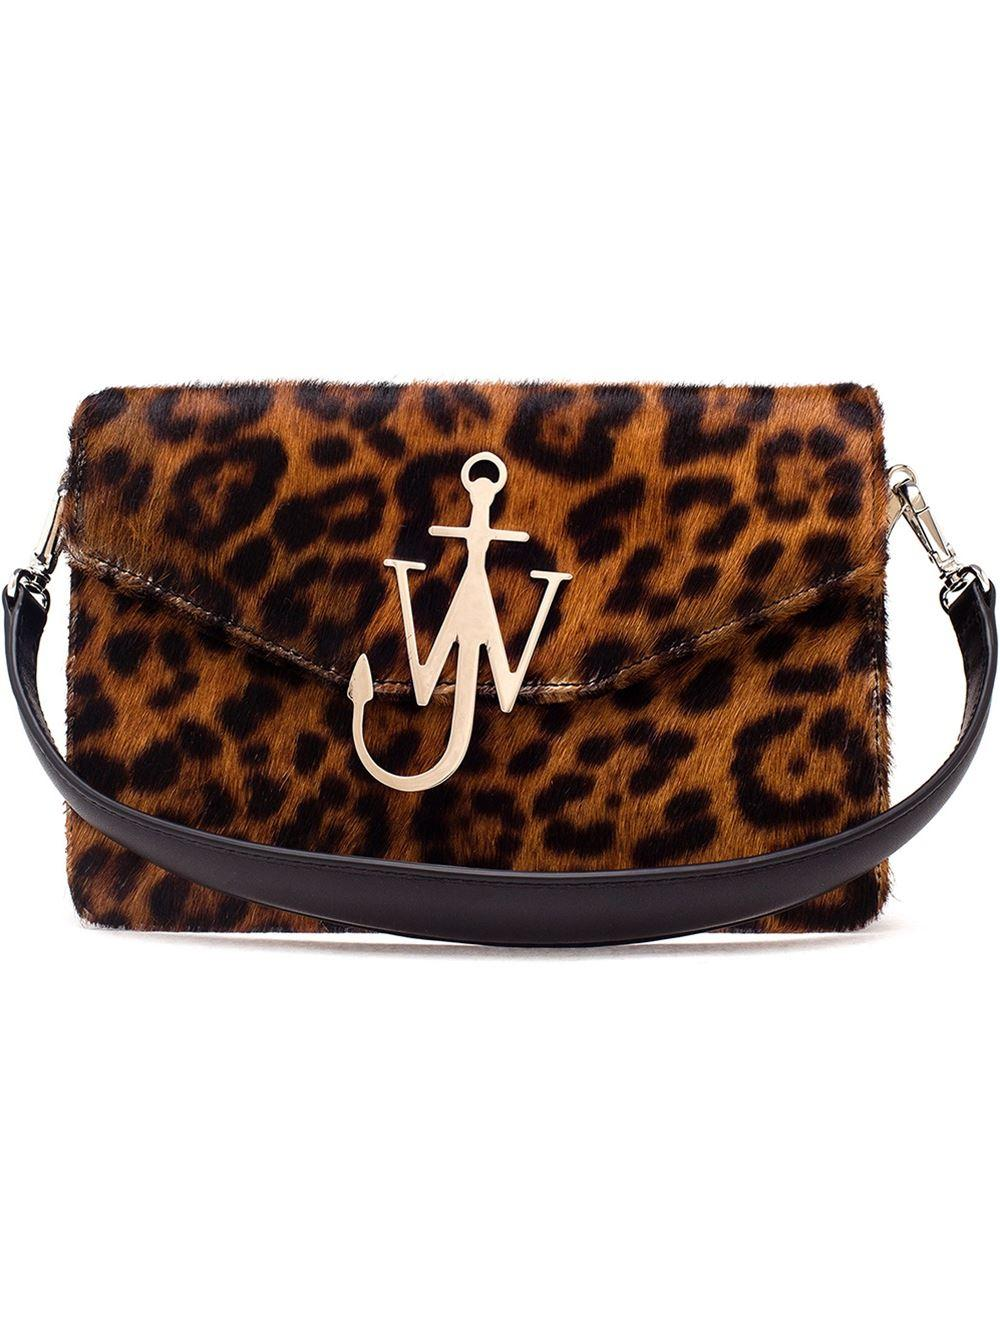 J.W. ANDERSON  logo shoulder bag On Sale @ Farfetch